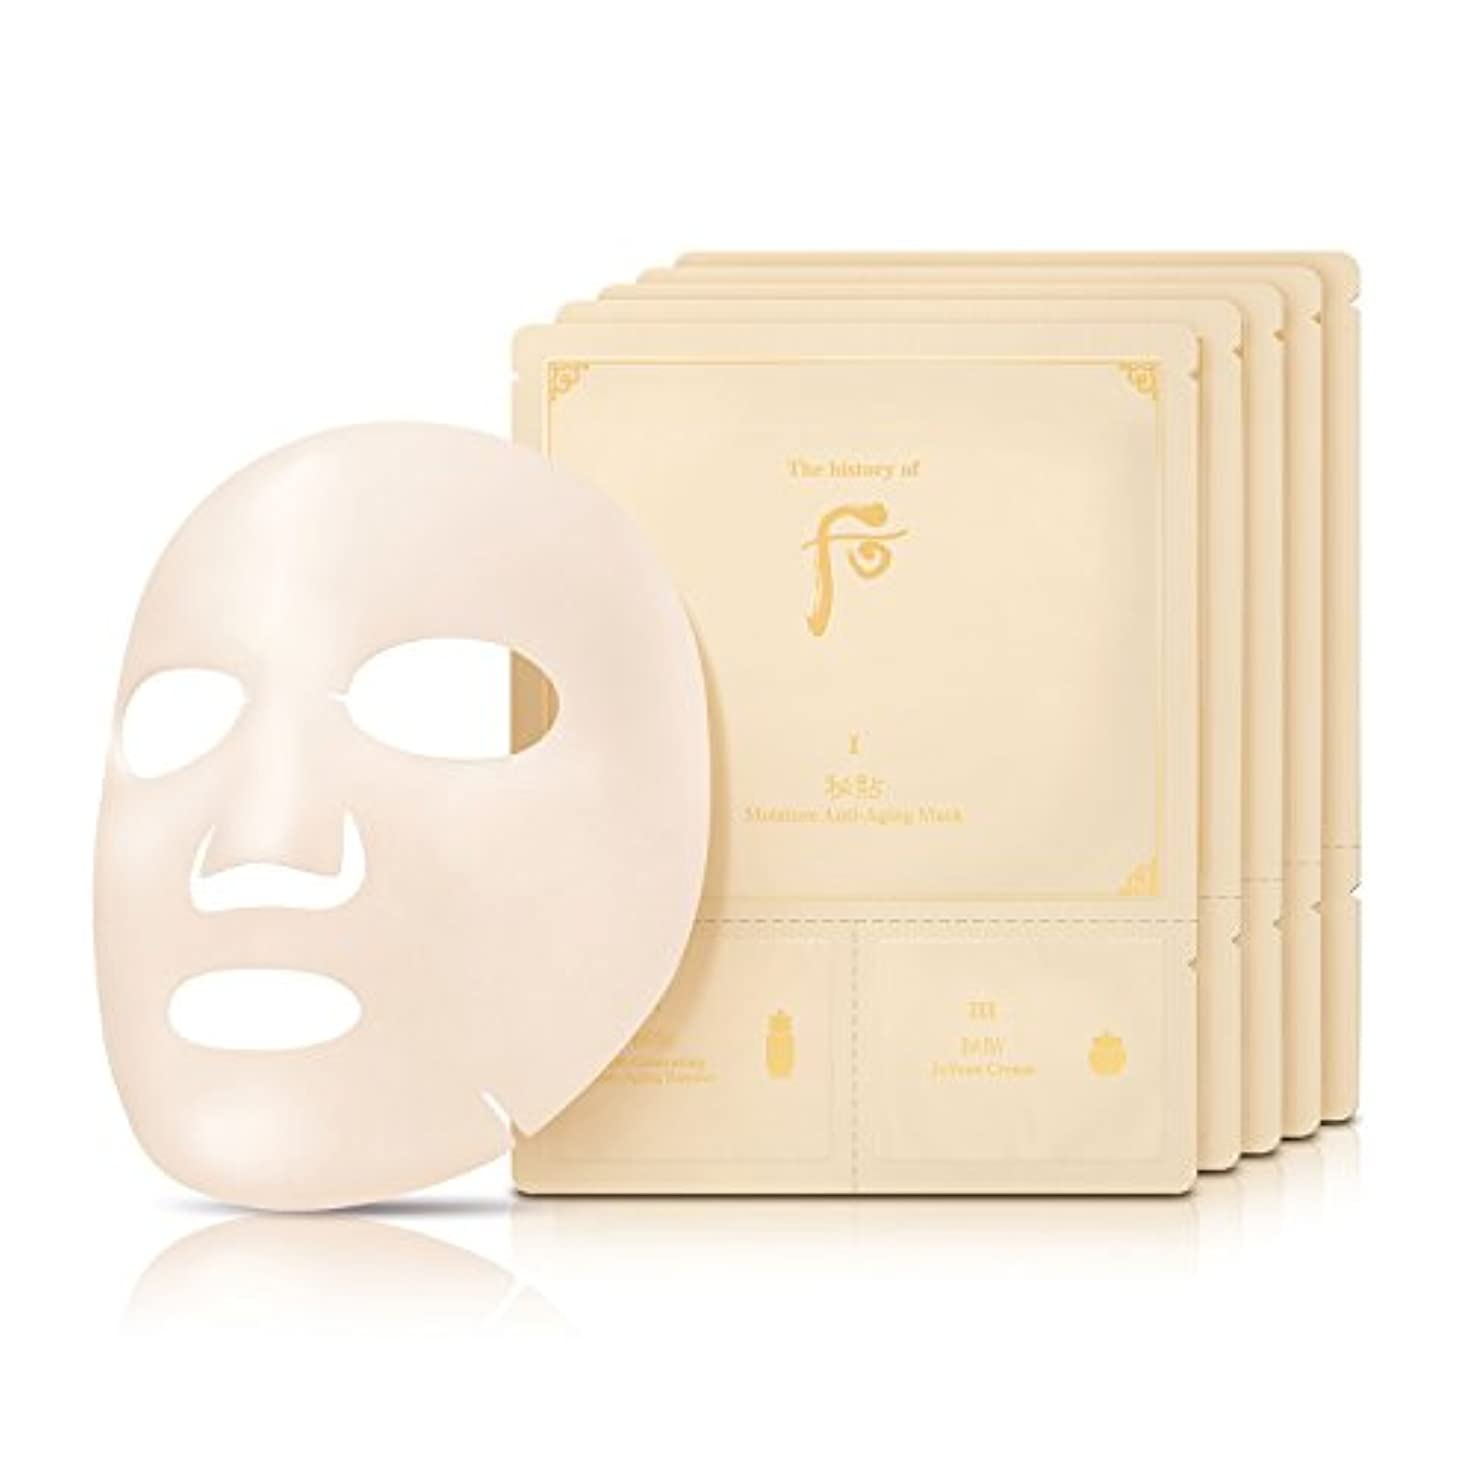 [The History Of Whoo] Whoo 后(フー) WHOO BICHUP SOOHWAN MASK (AUTHENTIC PRODUCT, 5 SHEETS)/ビチョプ循環マスク + Sample Gift...